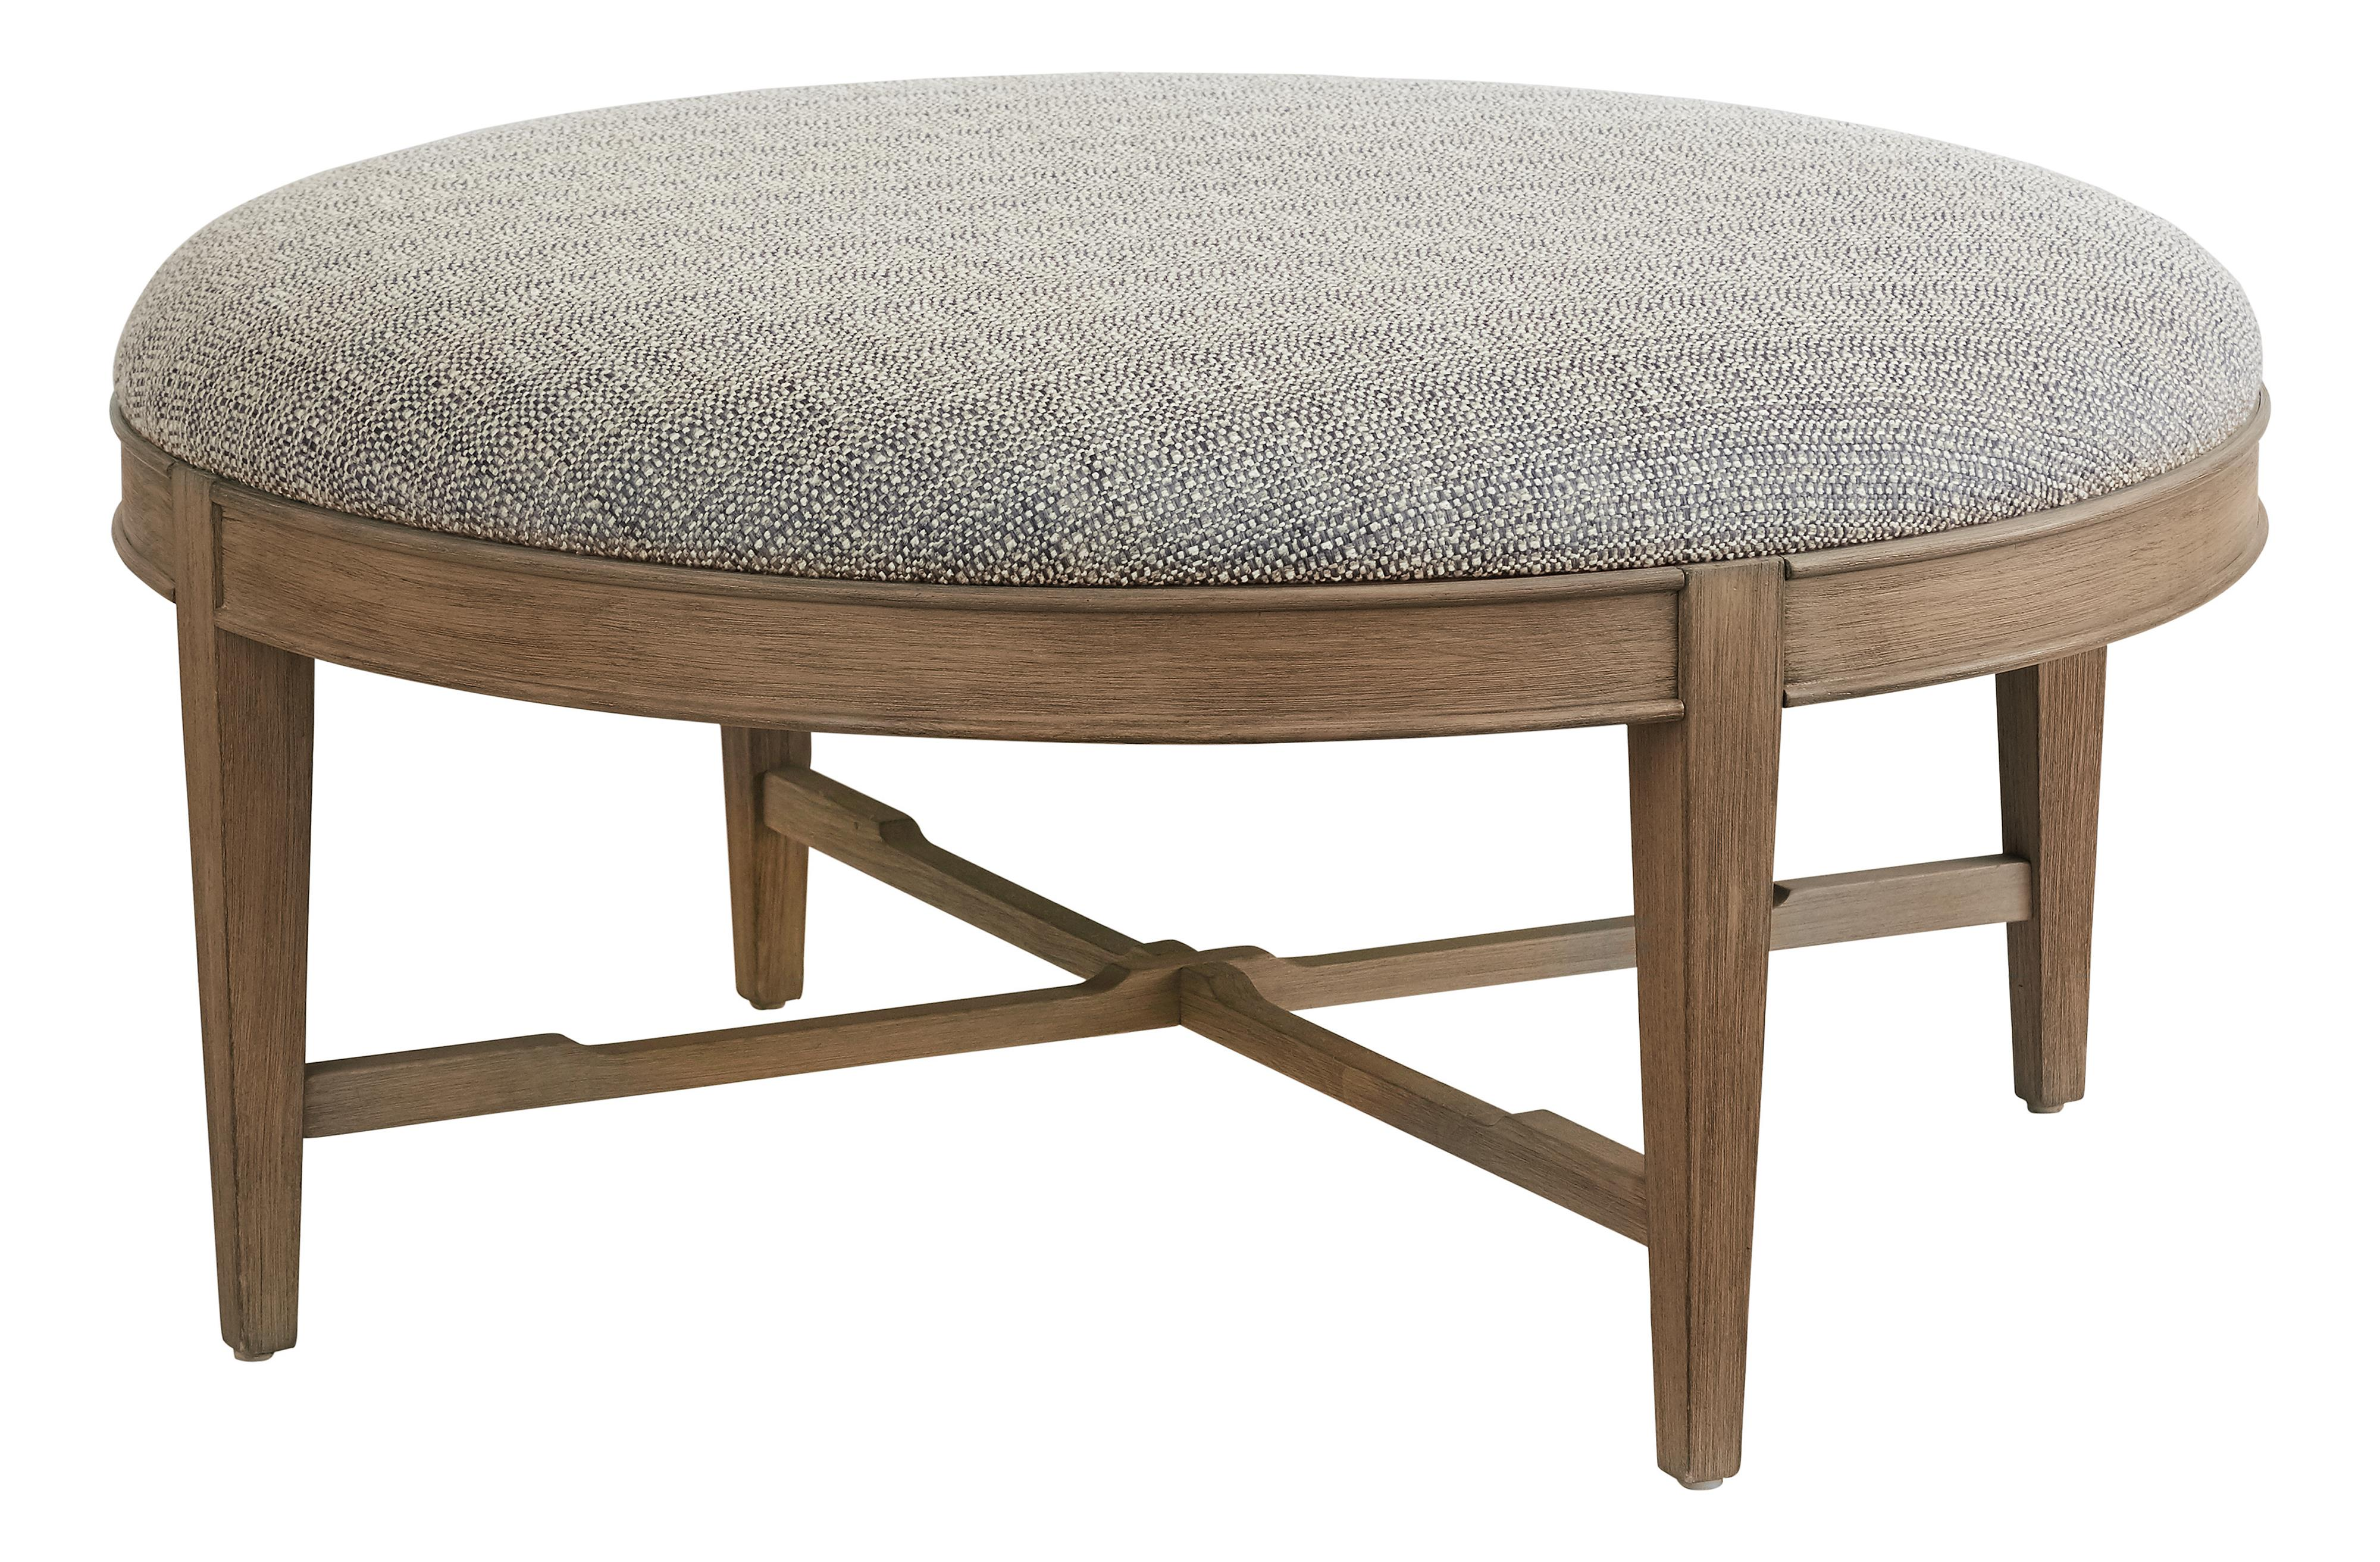 Artisanal Cocktail Ottoman by Bassett at Fisher Home Furnishings